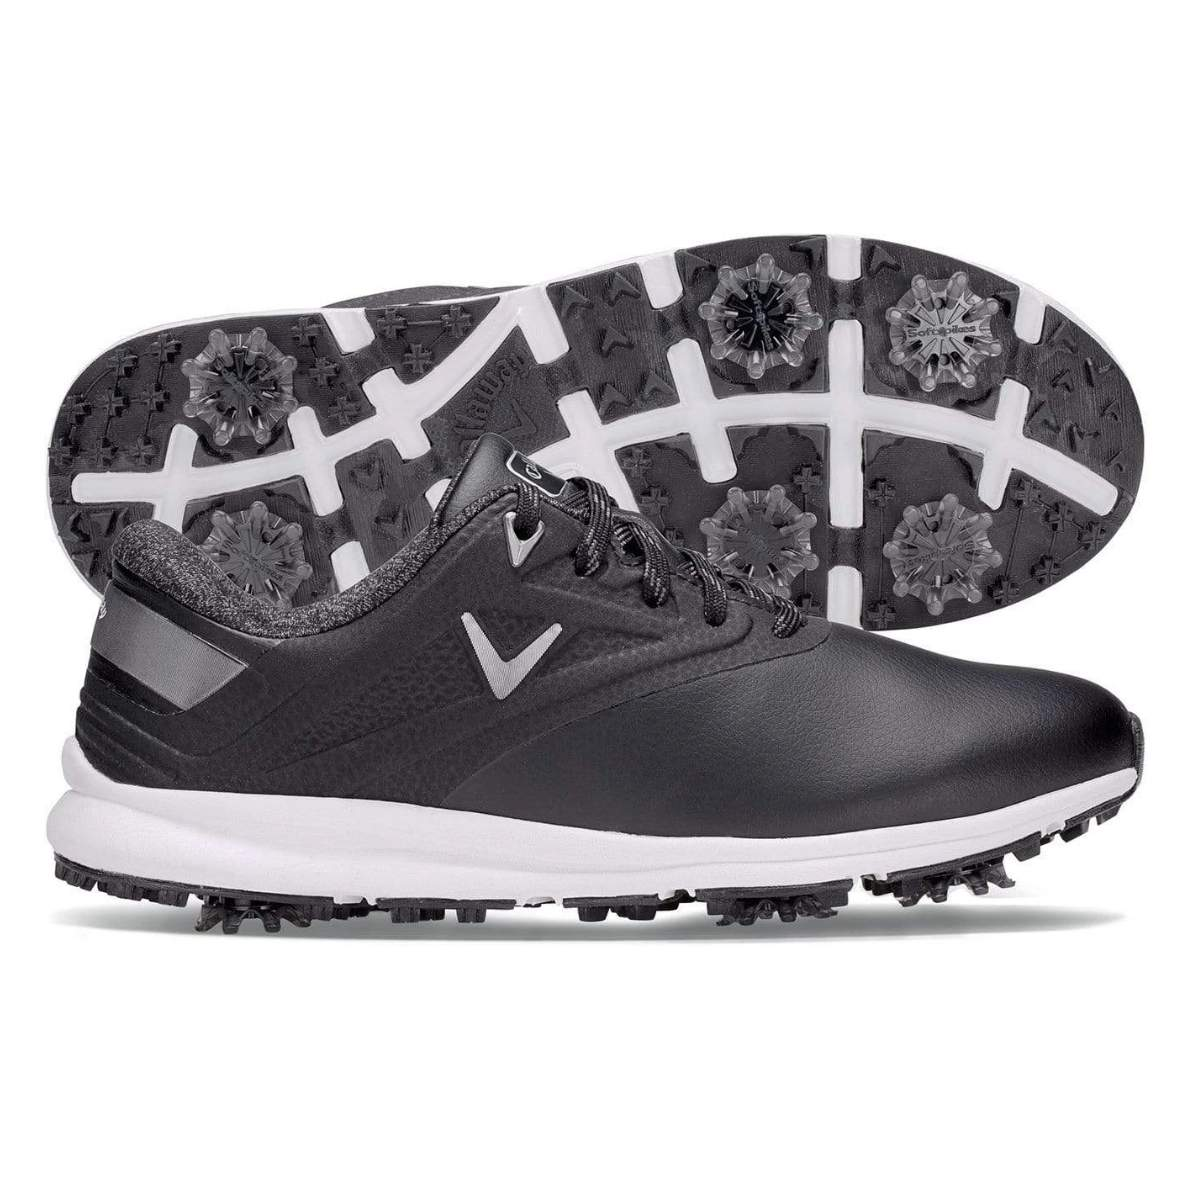 Callaway Women's Coronado Black Golf Shoes